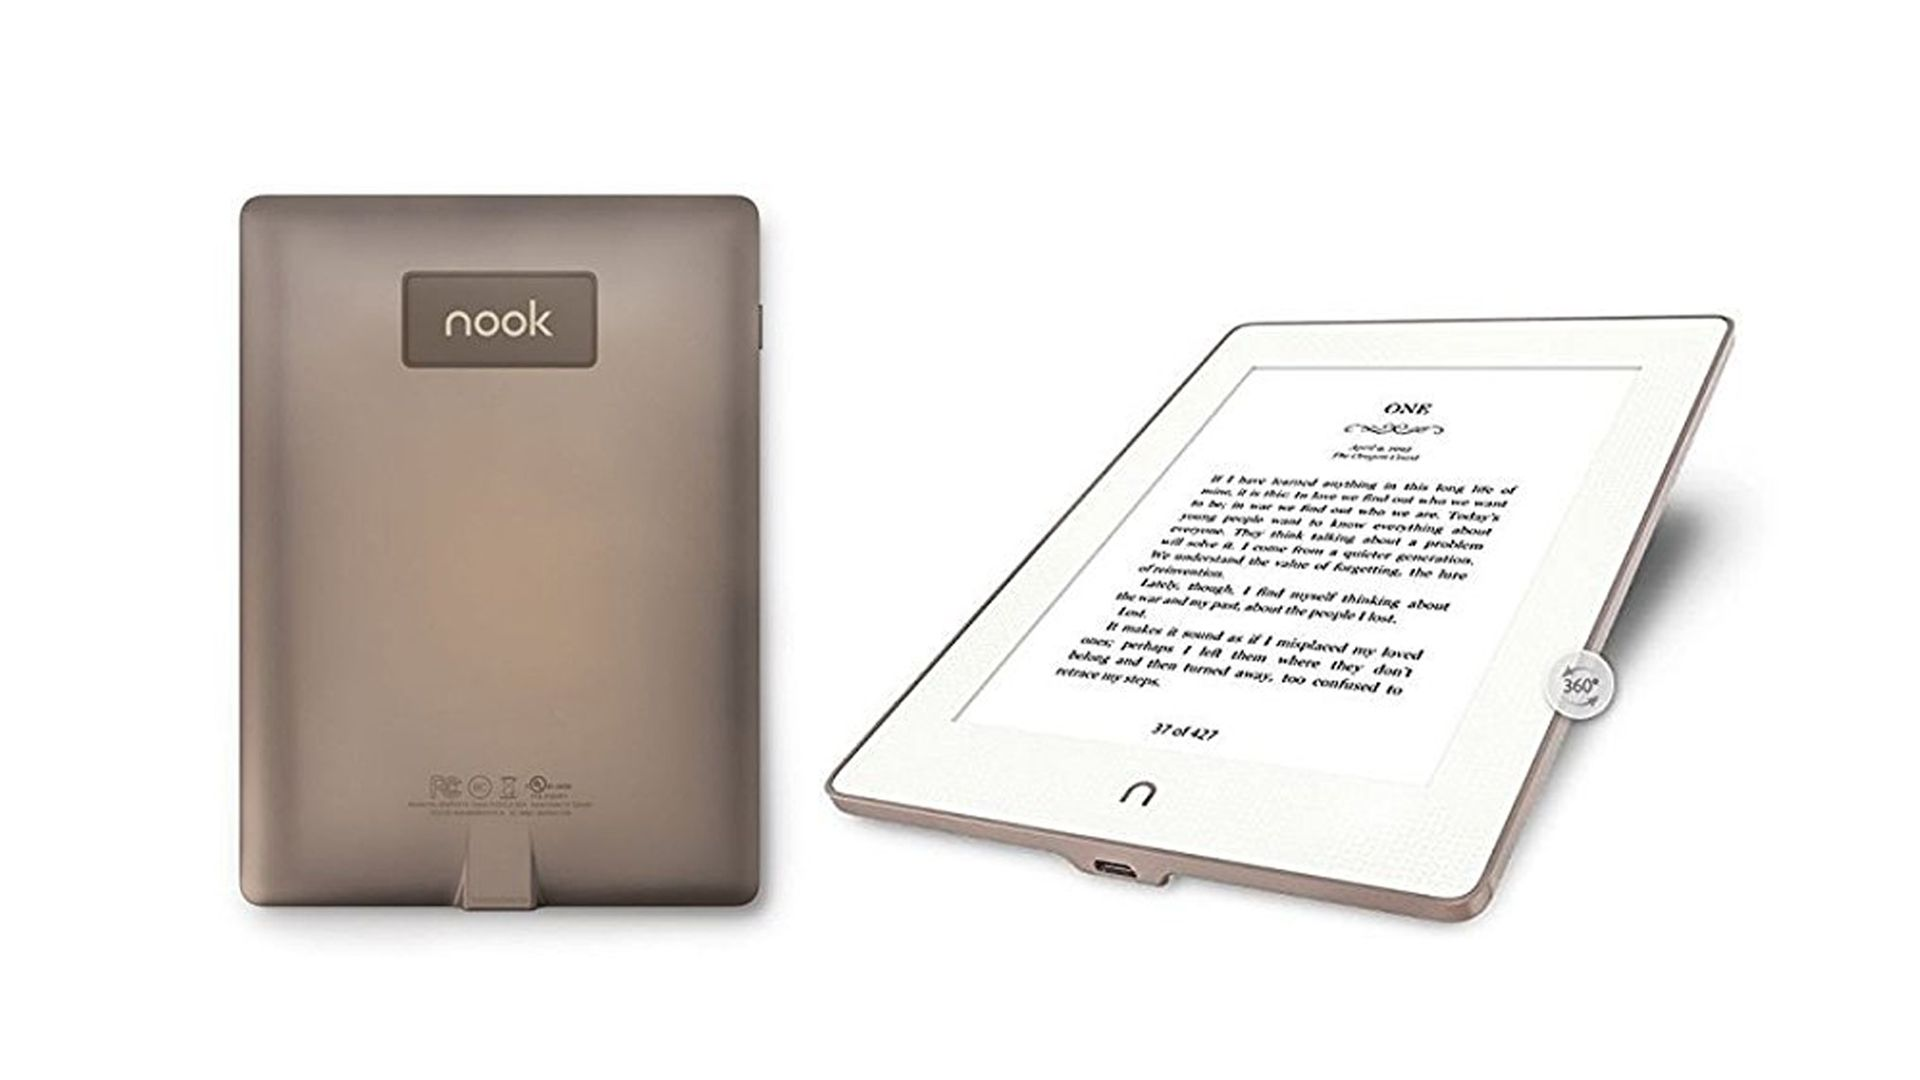 Double Take: Alternative E Ink Readers to Amazon's Kindle